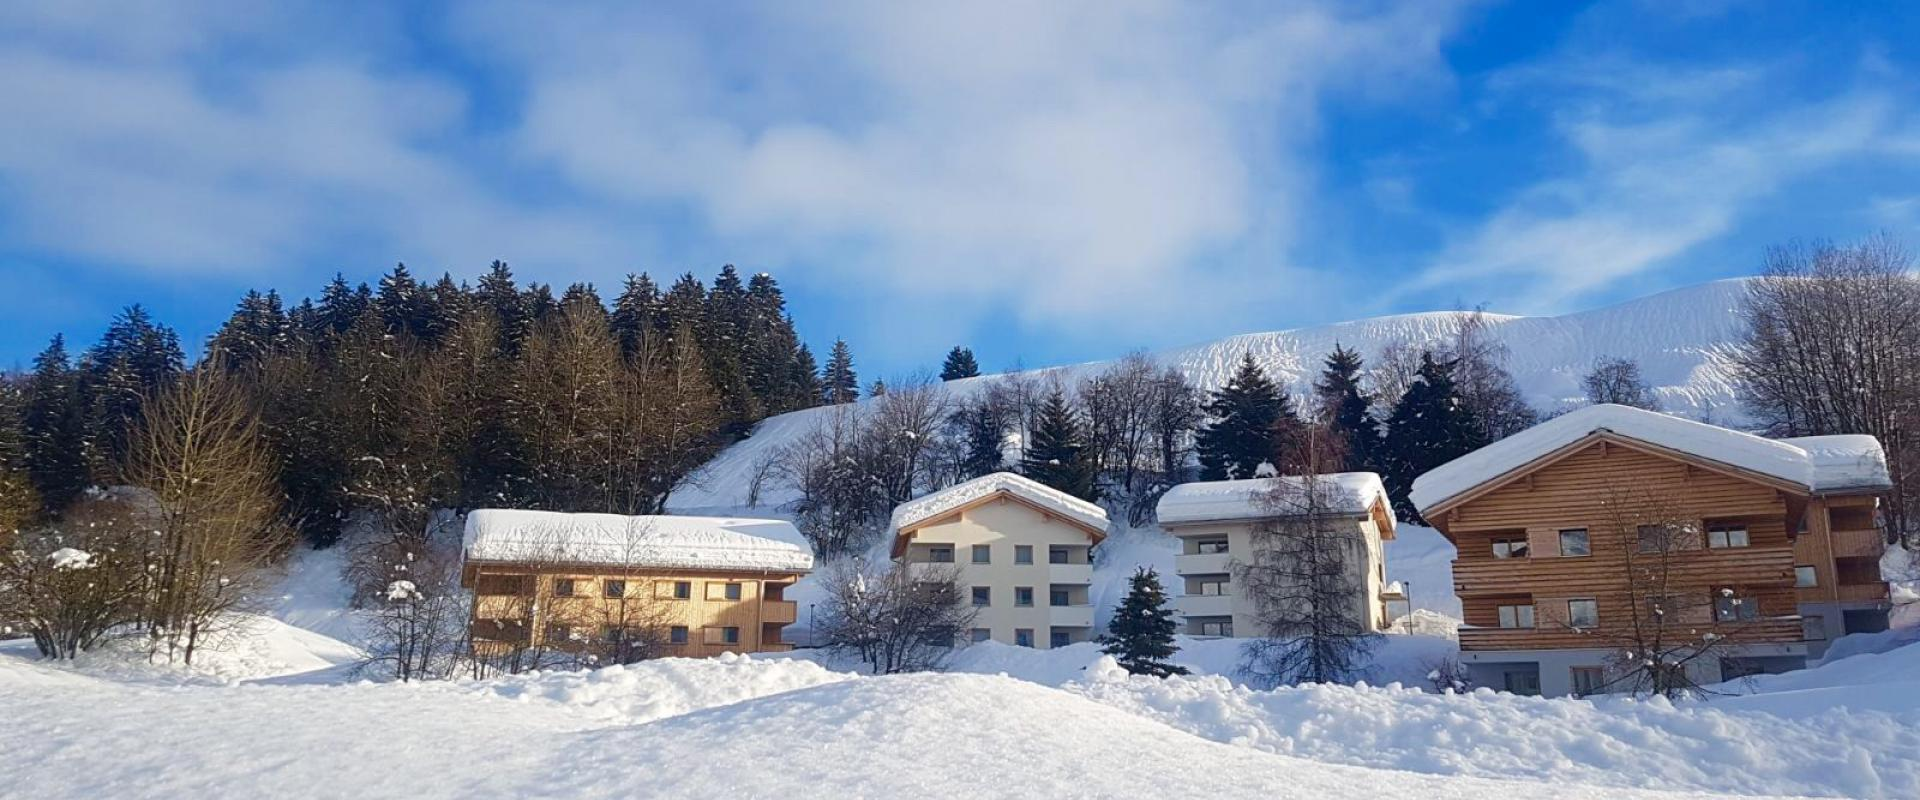 Pradas Resort Brigels Winter